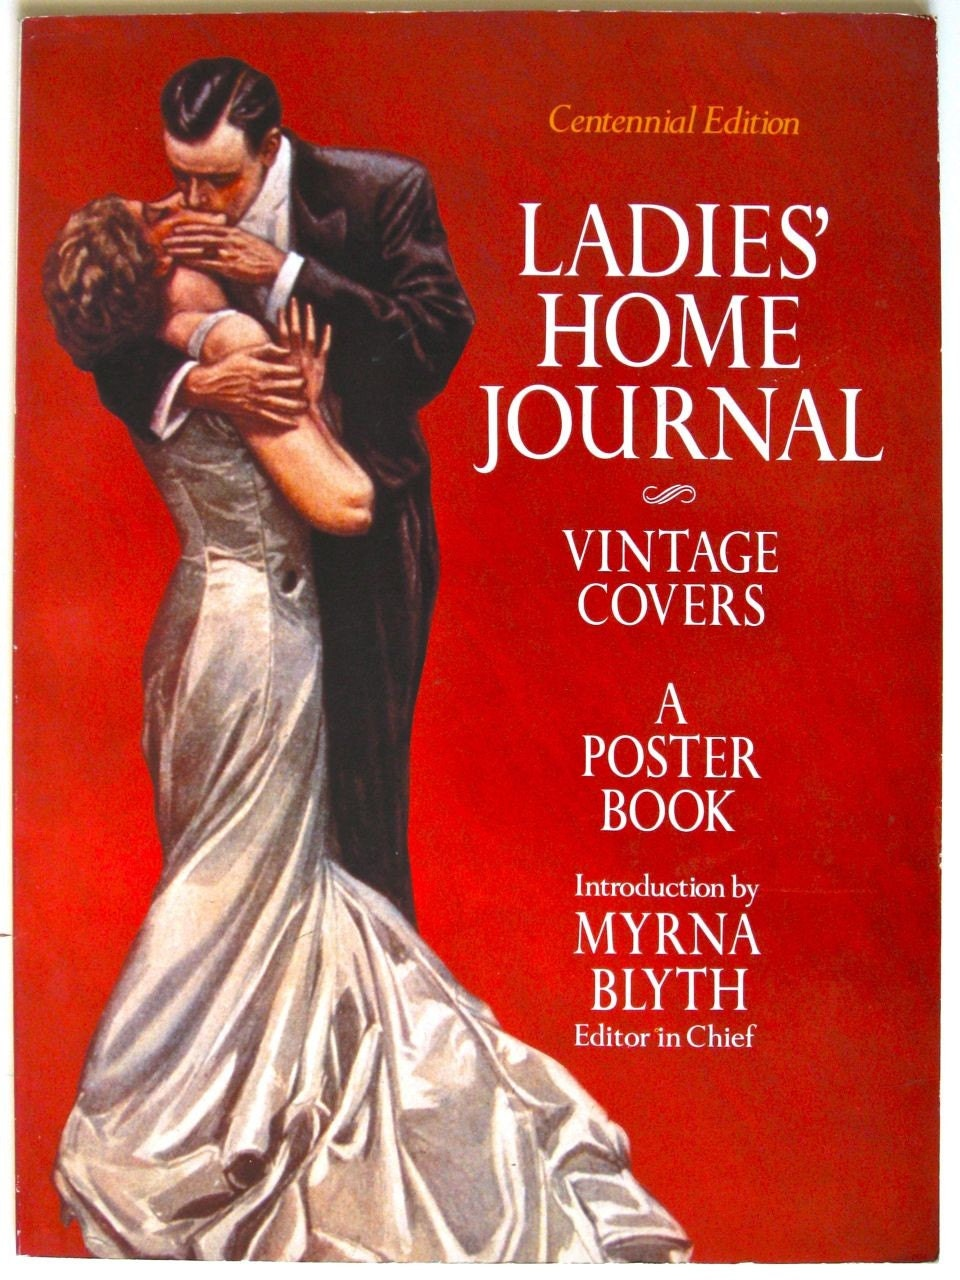 Old Book Cover Posters : Ladies home journal vintage covers poster book sb op